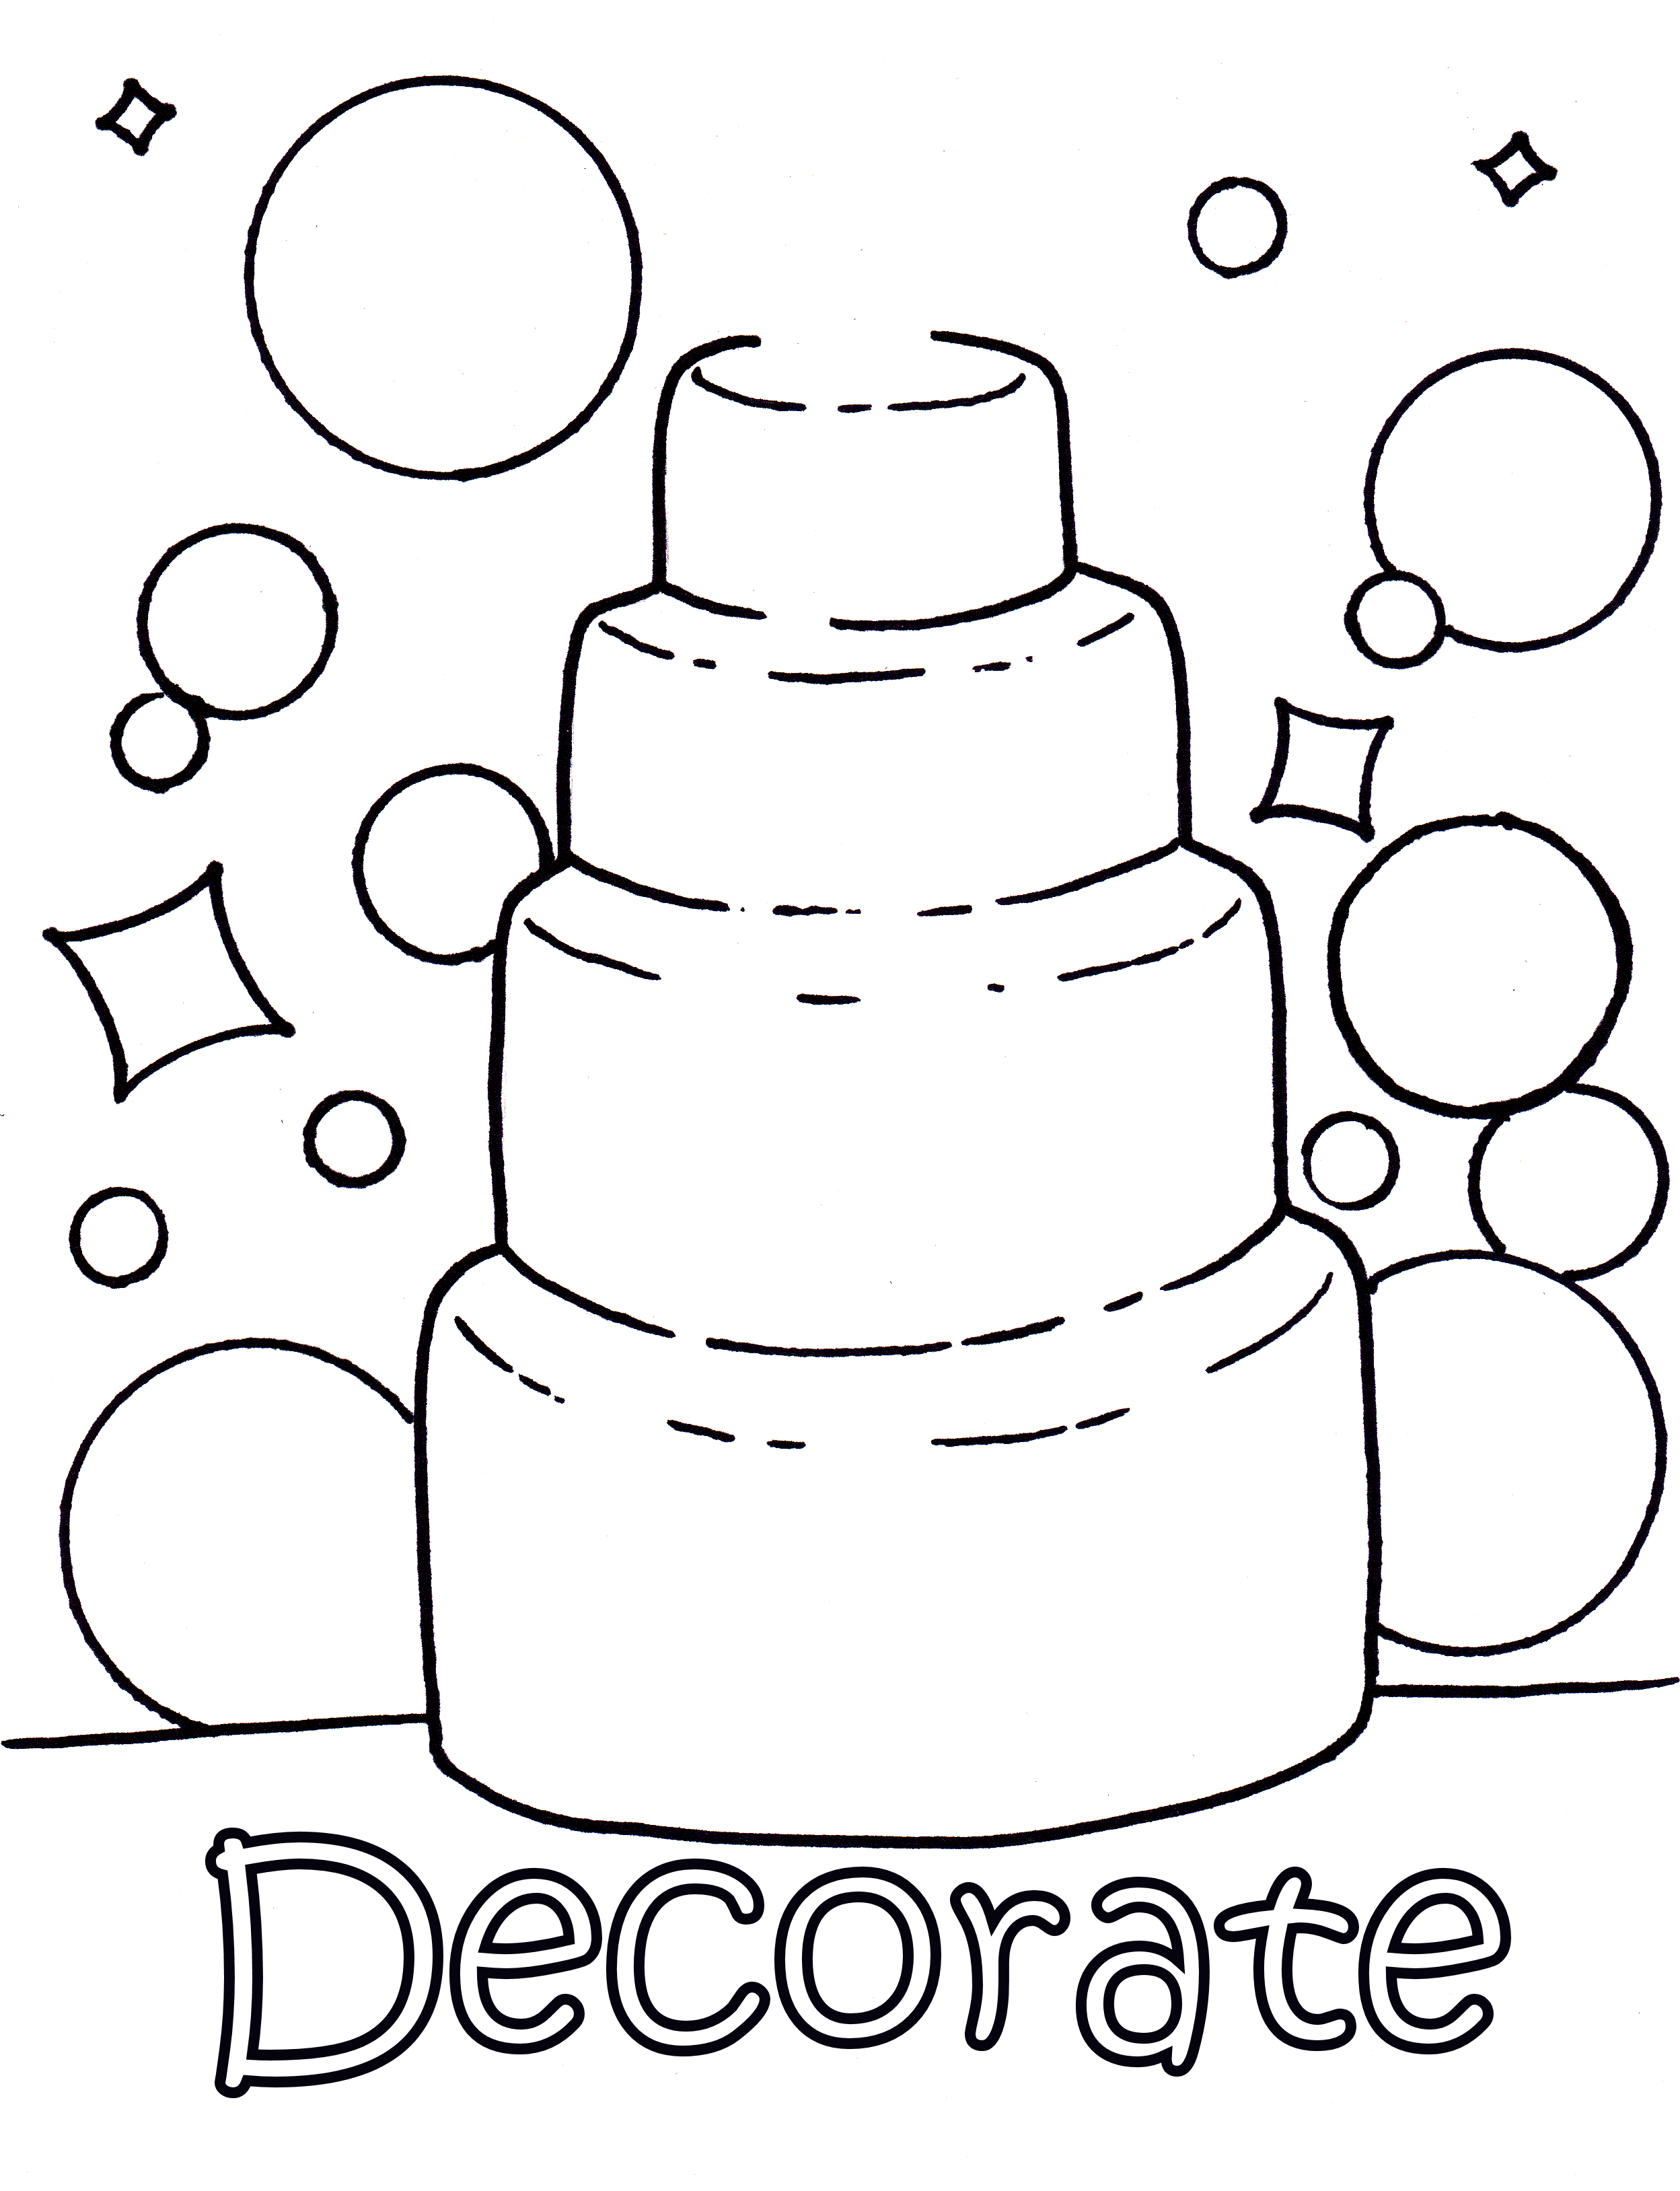 Free printable santa wish list coloring page tickled peach studio - Decorate Your Own Wedding Cake Colouring Page